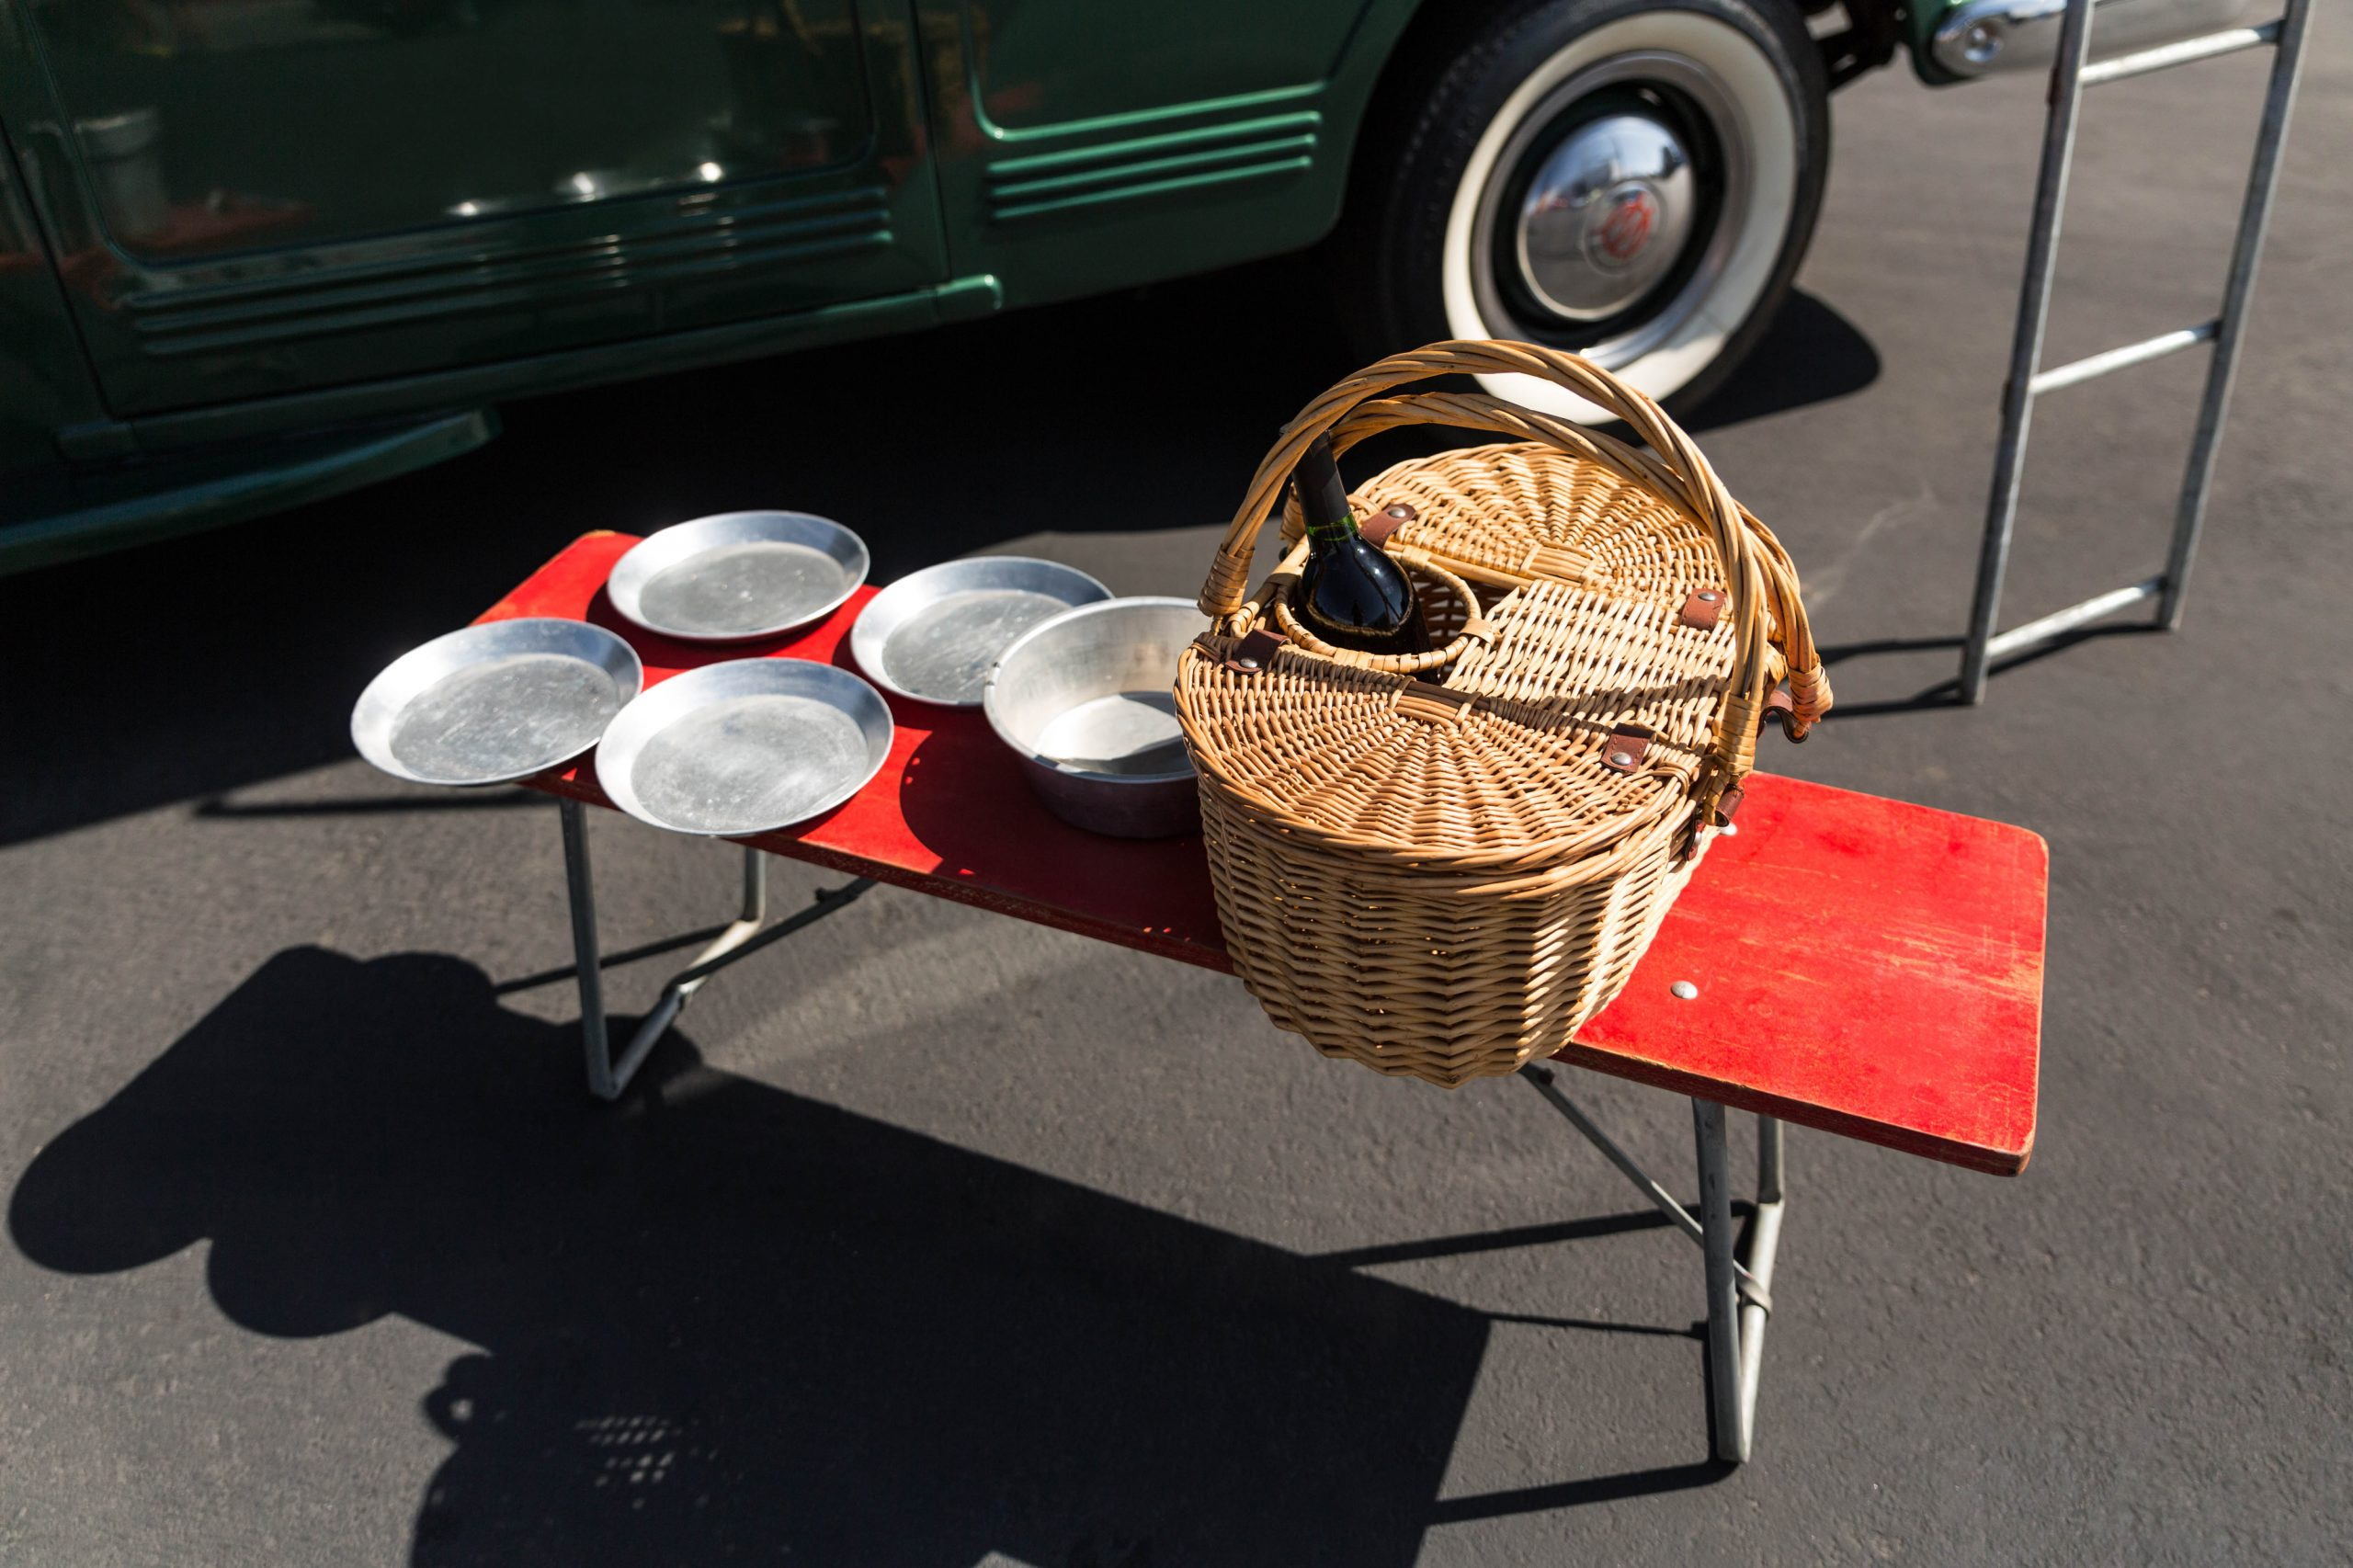 1949-Willys-Jeep-Station-Wagon-Camper picnic gear